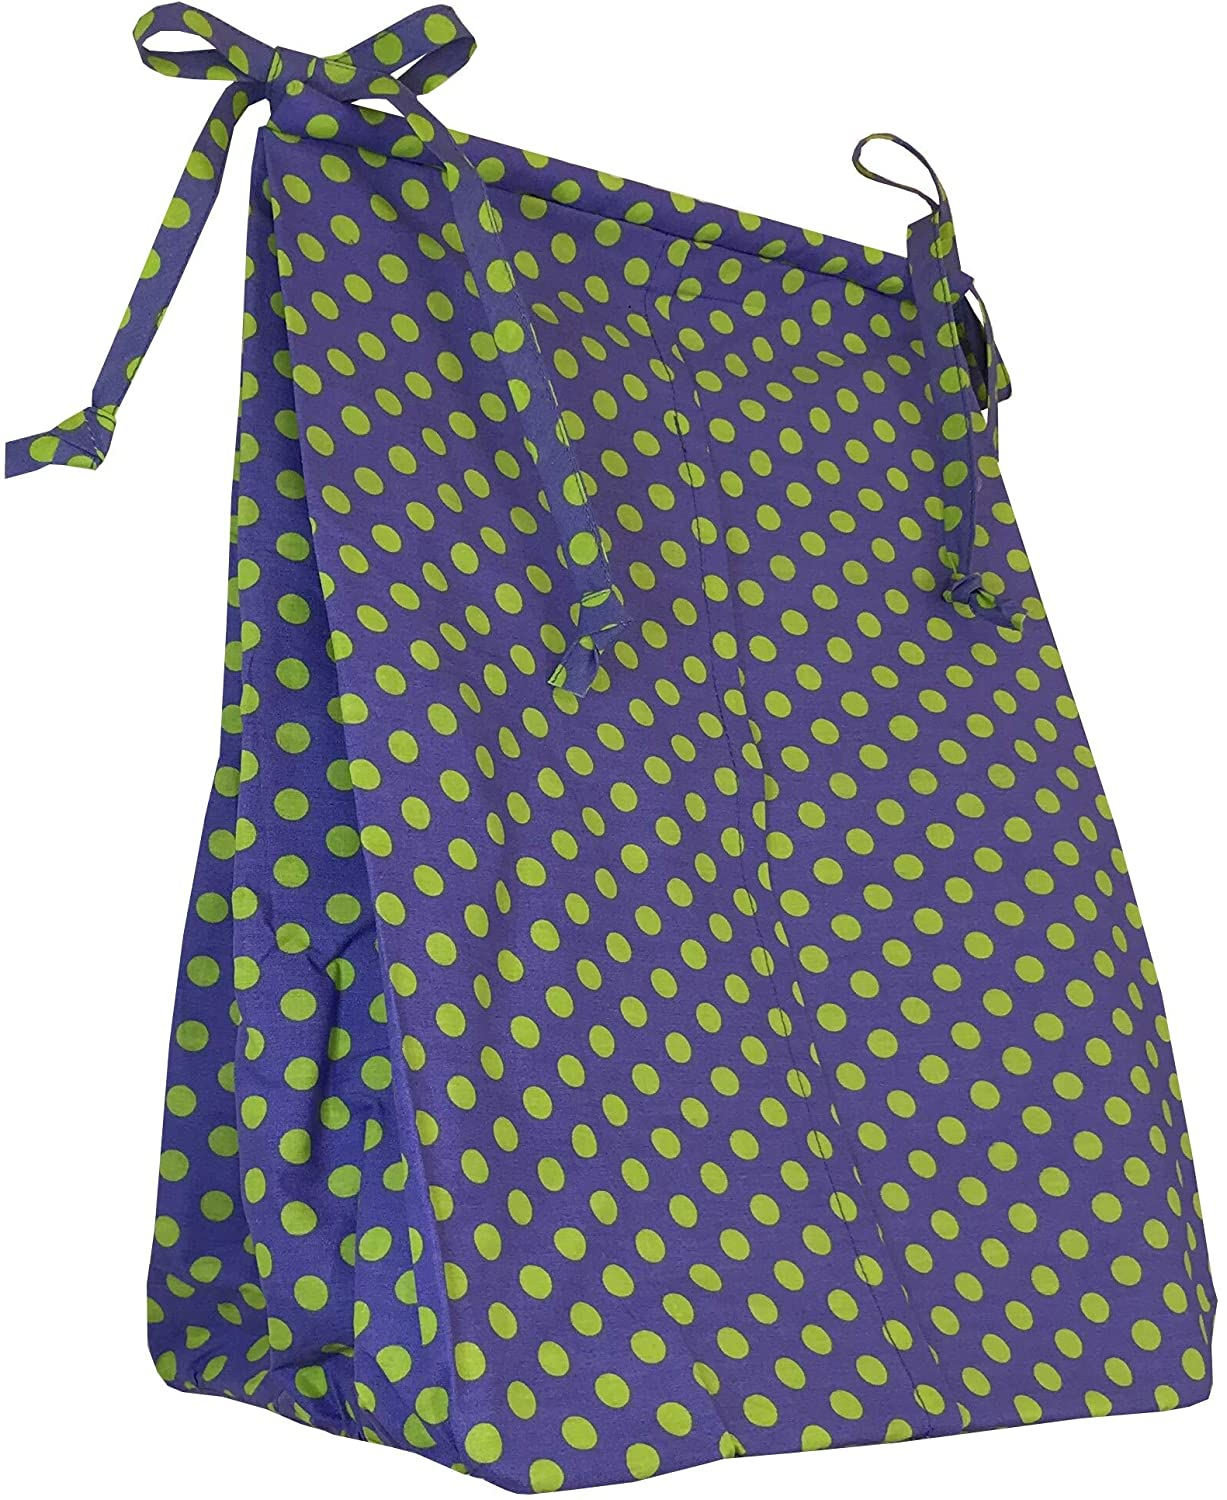 Unknown1 Periwinkle Diaper Stacker Holds Approximately 4 Dozen Newborn Diapers Green Color Purple Girls